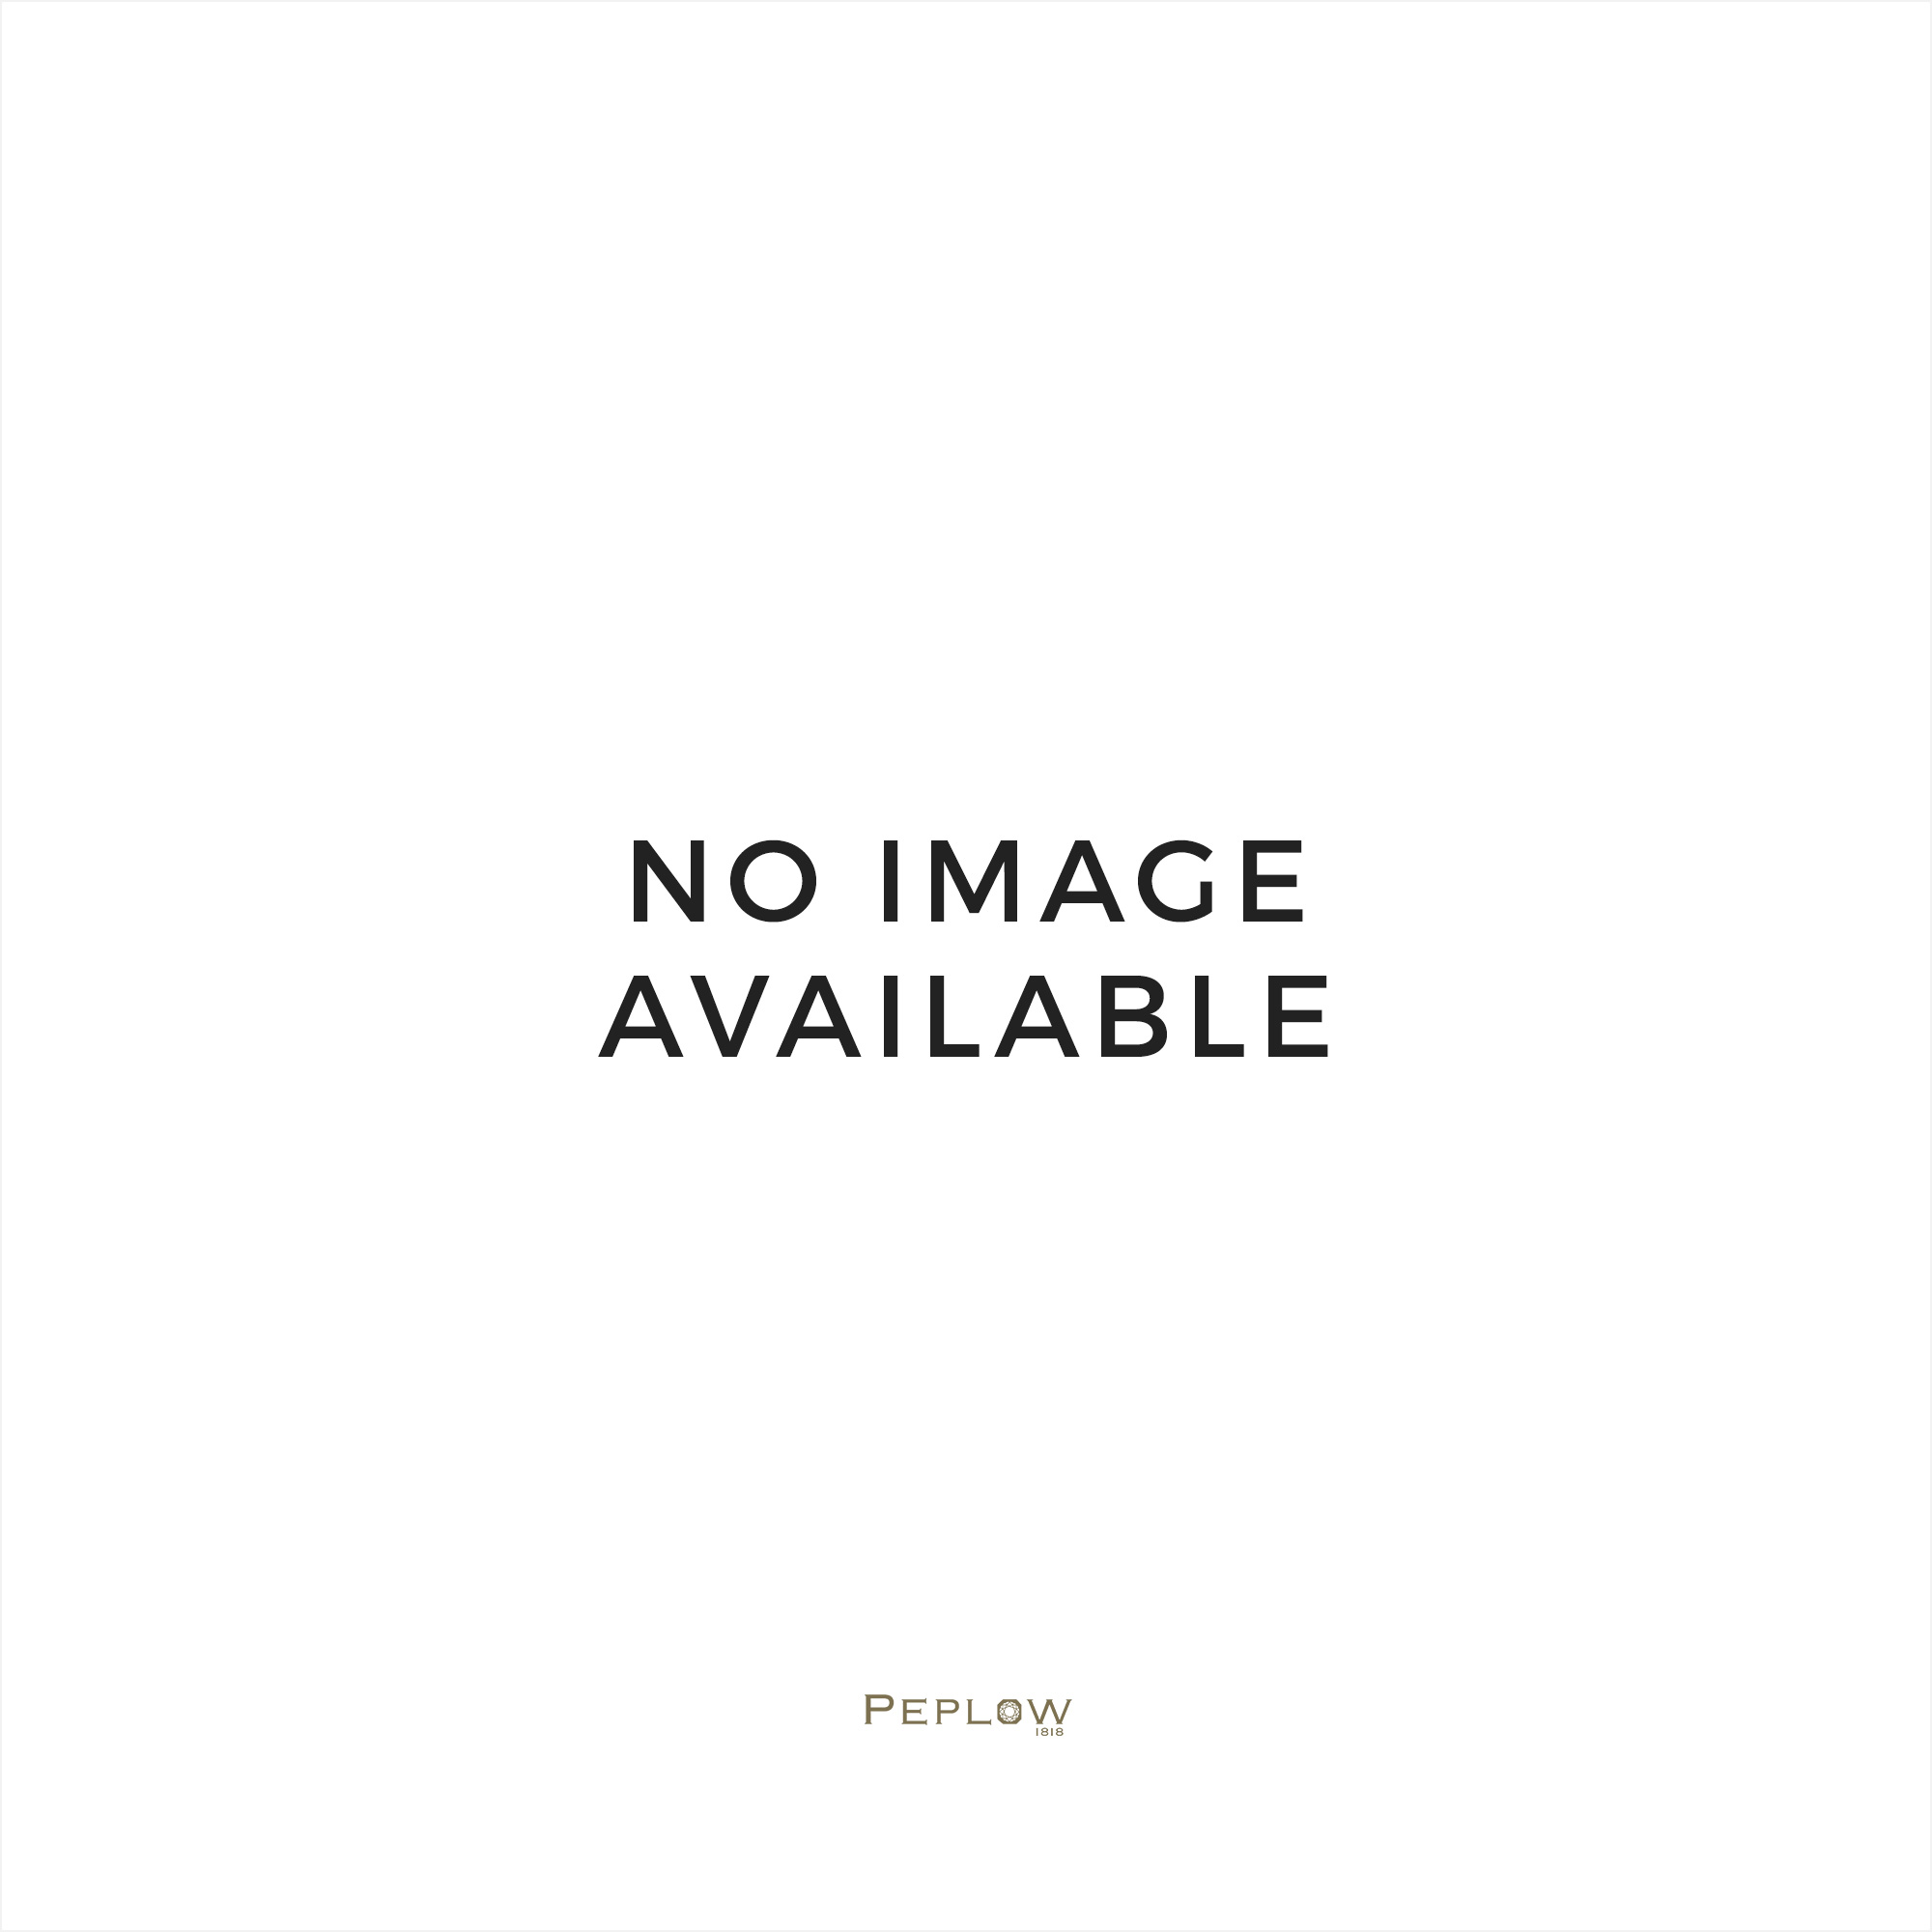 Citizen Watches Gent's Citizen two-tone watch BF0584-56E